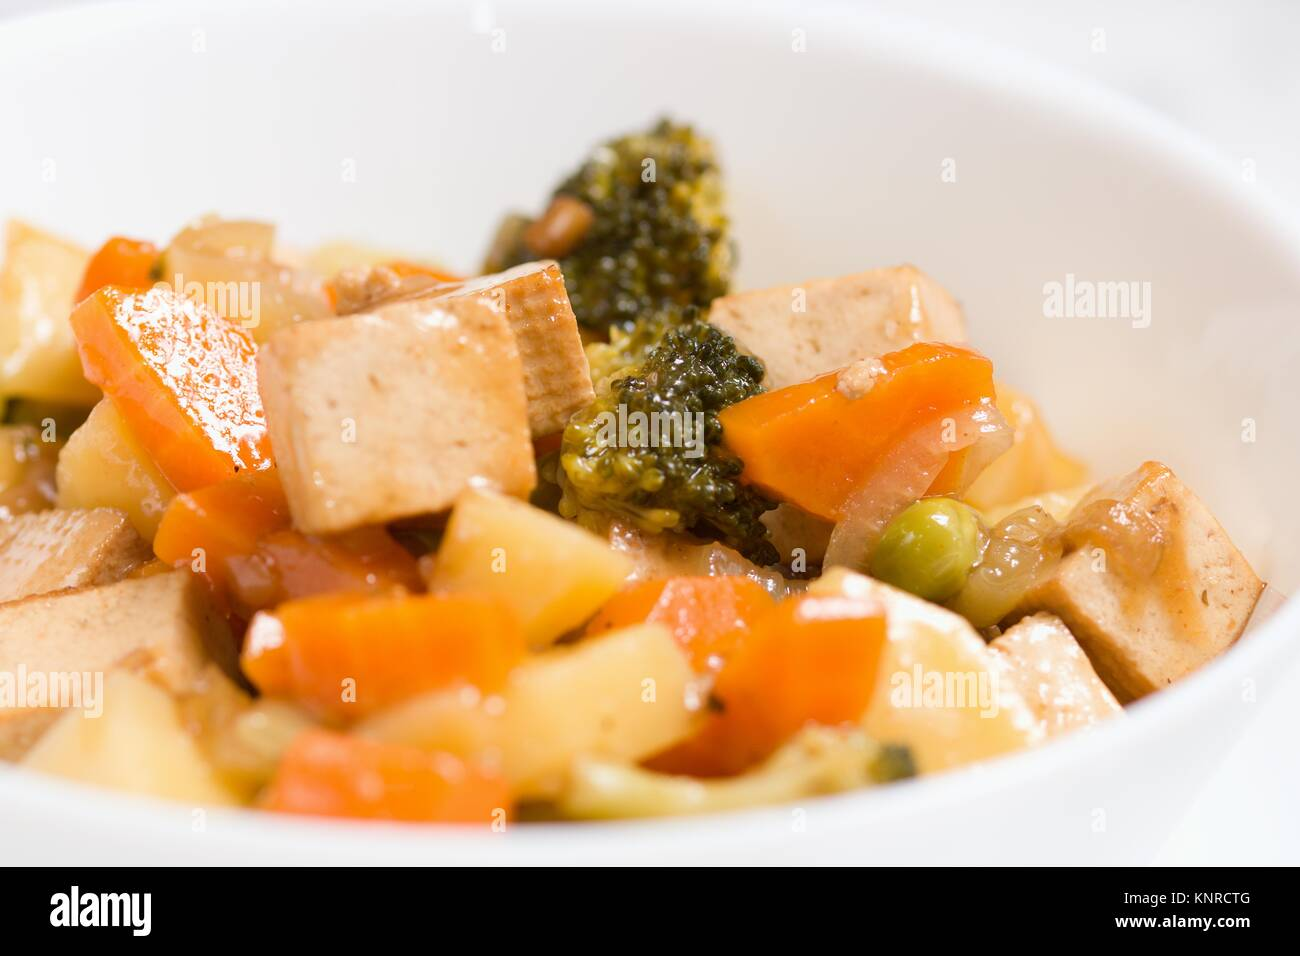 Macro shot of served vegan meal of tofu and several cooked vegetables in white bowl - Stock Image